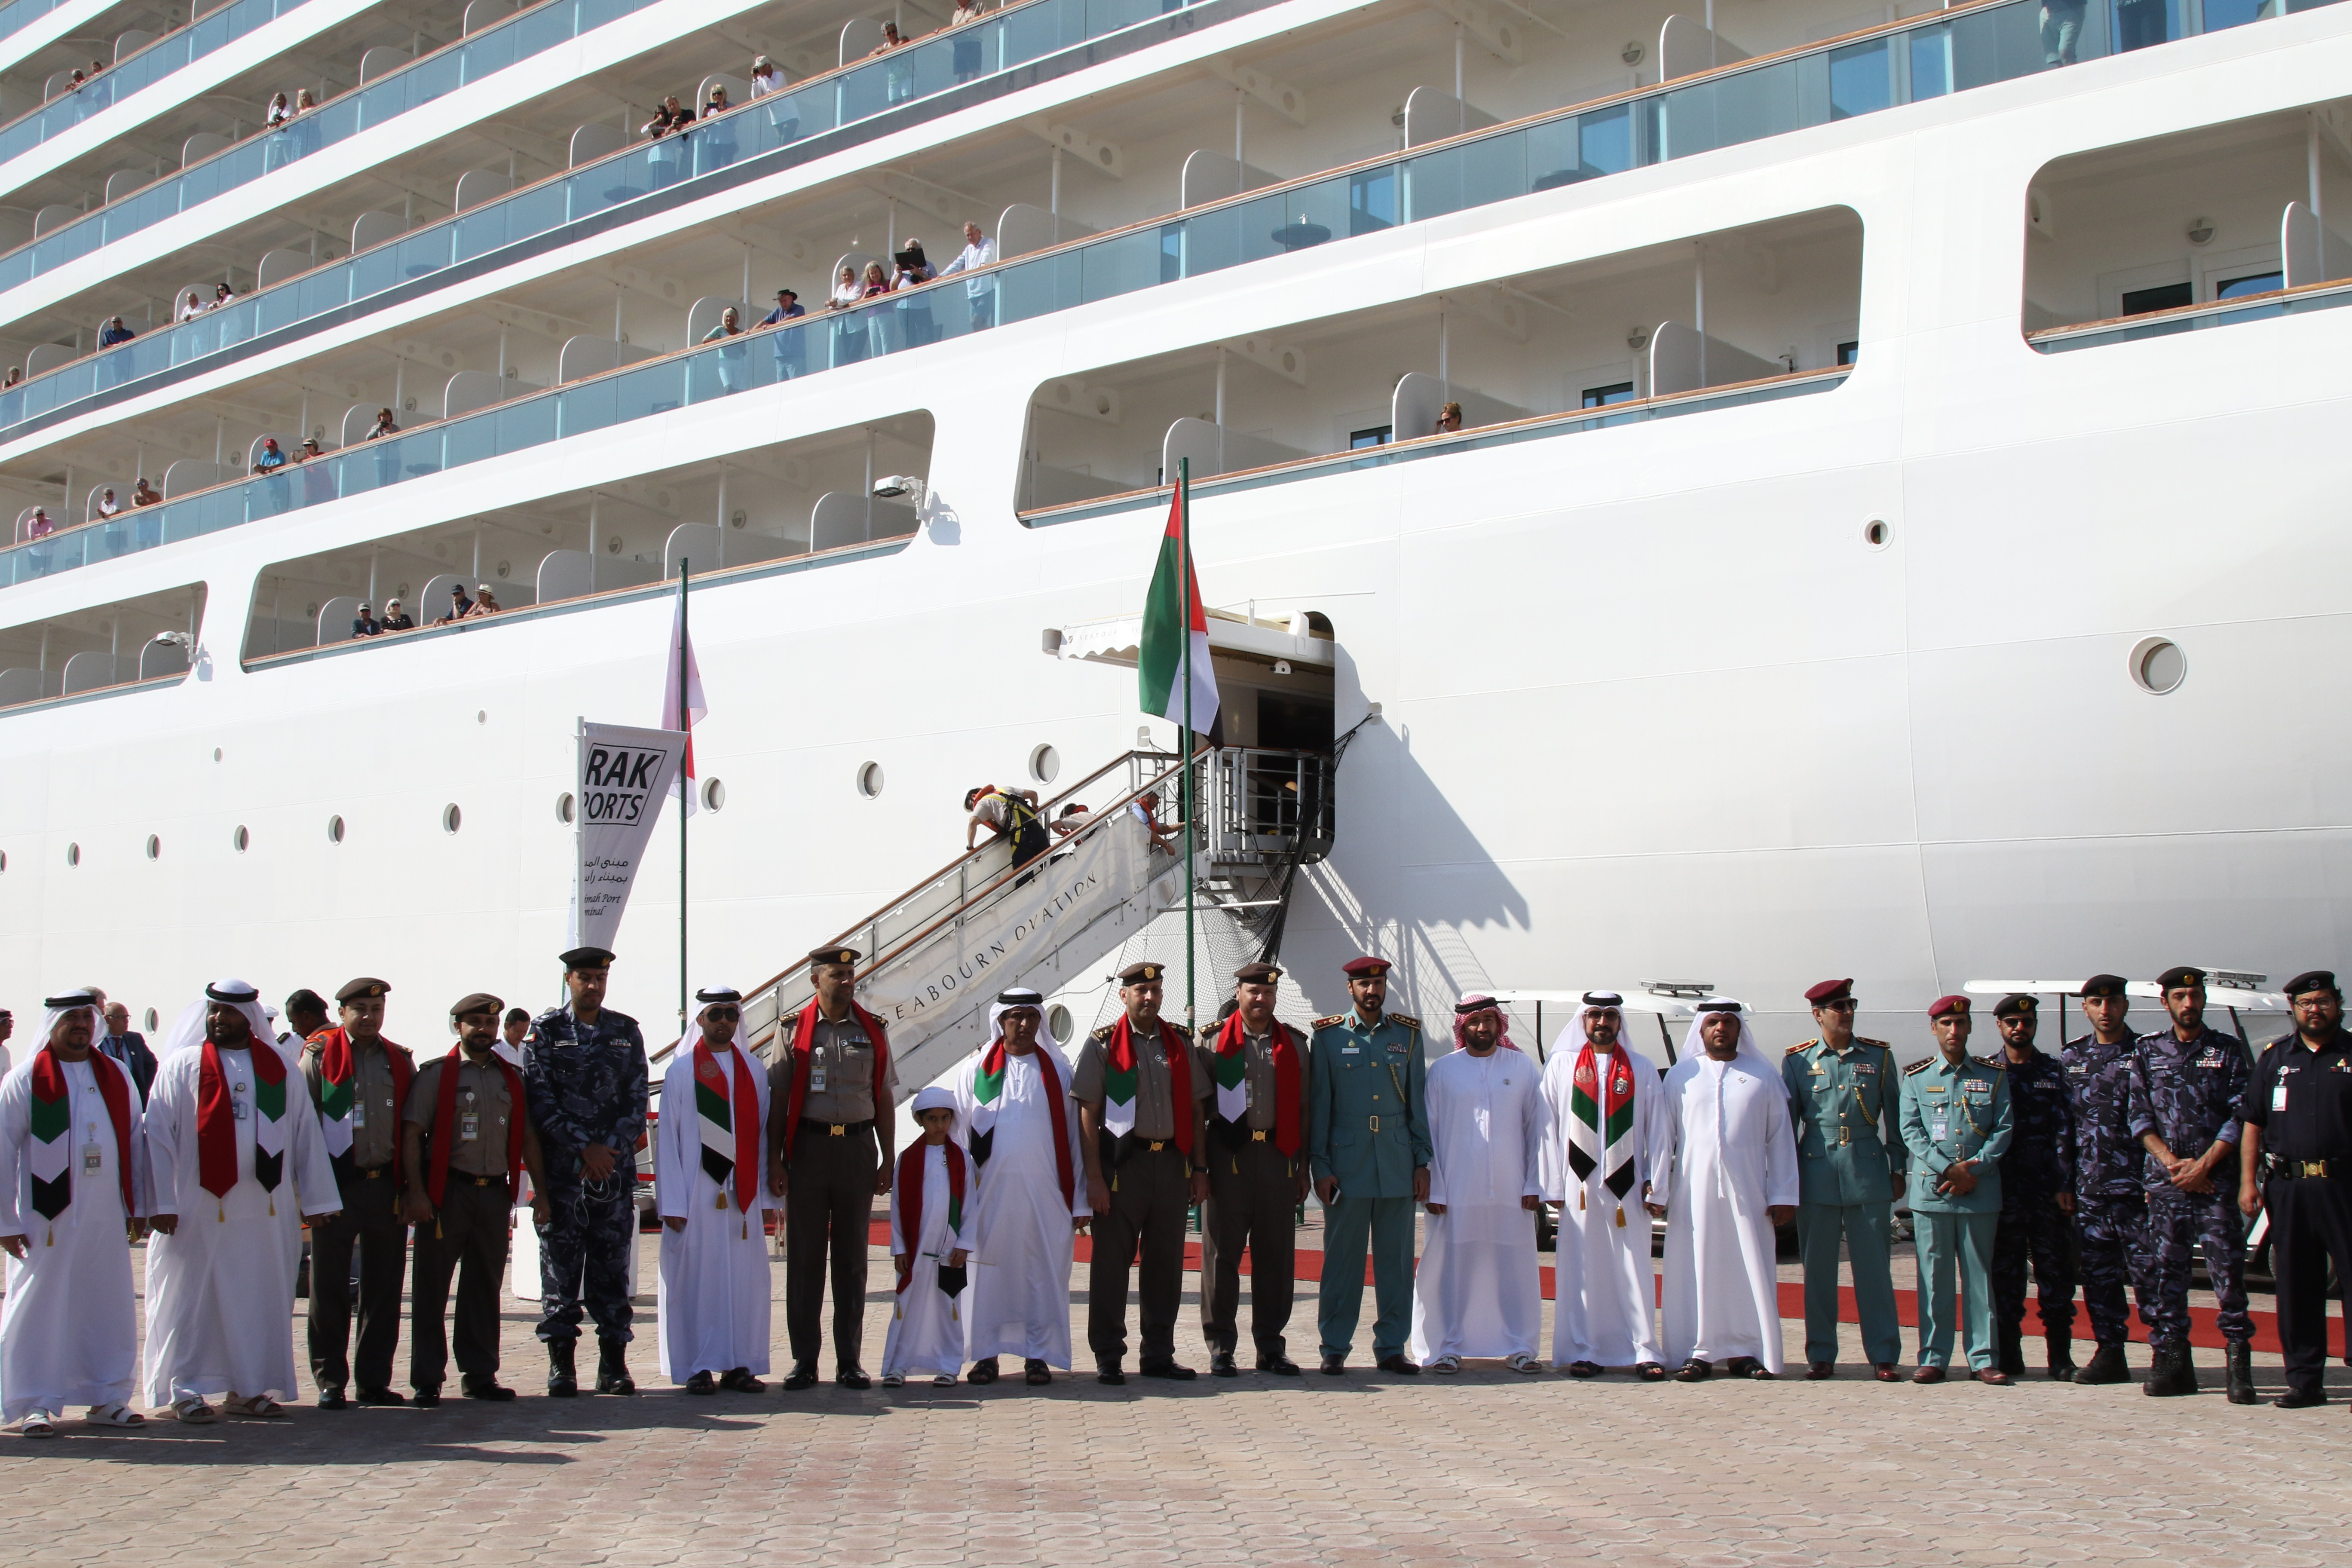 RAK Customs take part in receiving the 'Seabourn Ovation' cruise ship